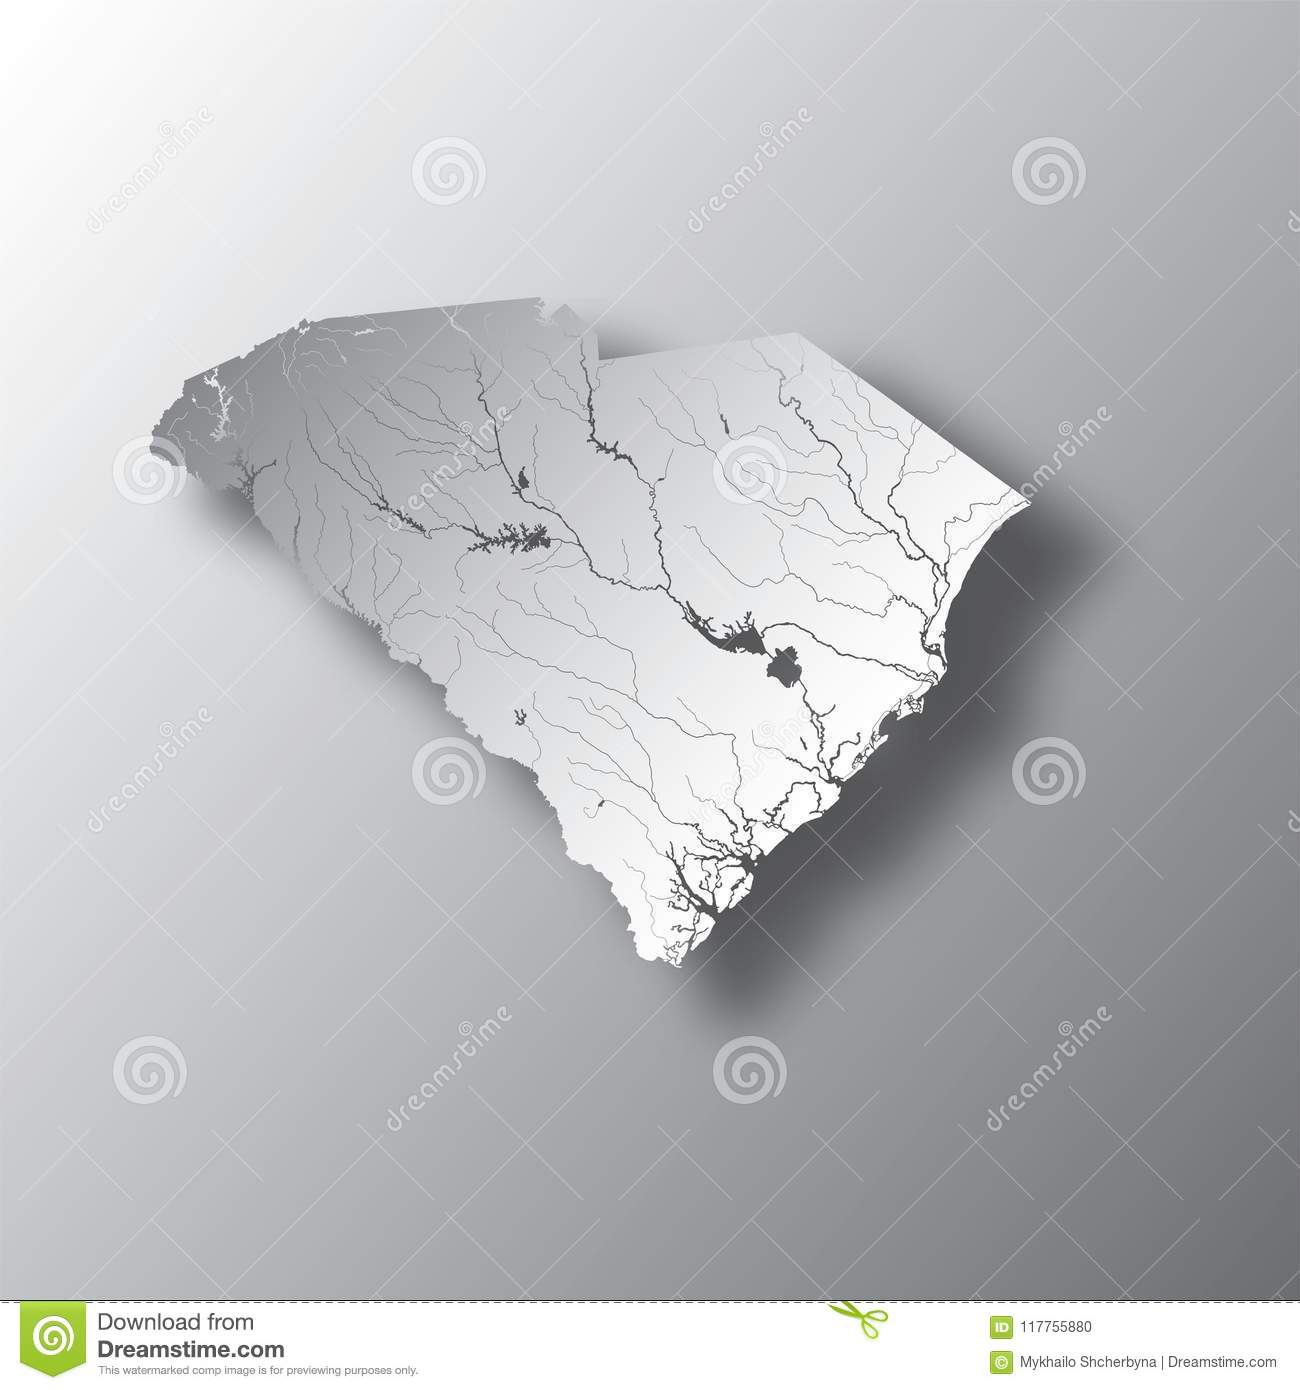 Map Of South Carolina With Lakes And Rivers. Stock Vector ...